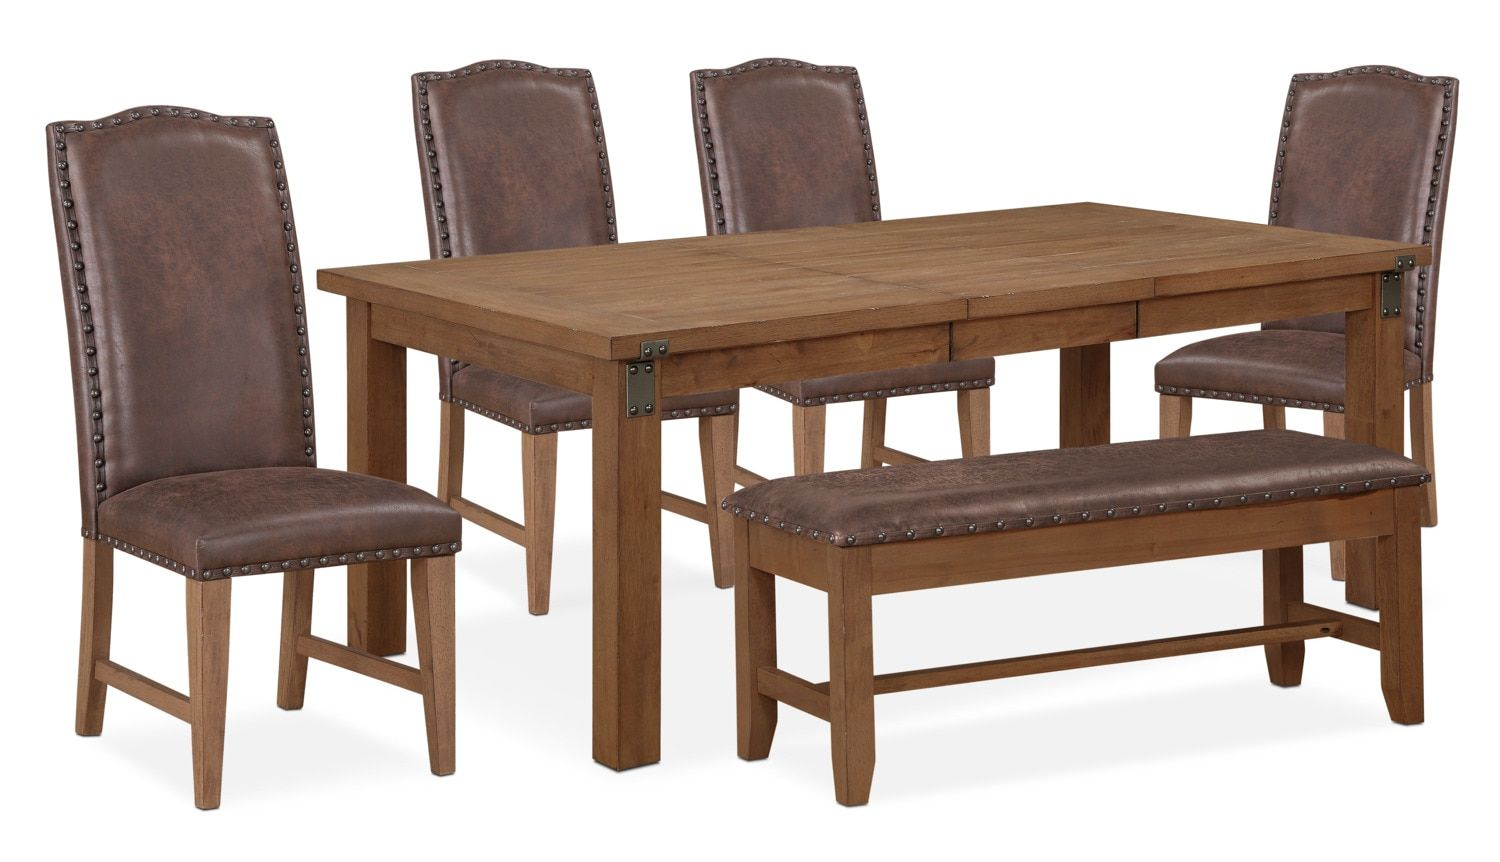 Terrific Hampton Dining Table 4 Upholstered Side Chairs And Storage Ibusinesslaw Wood Chair Design Ideas Ibusinesslaworg